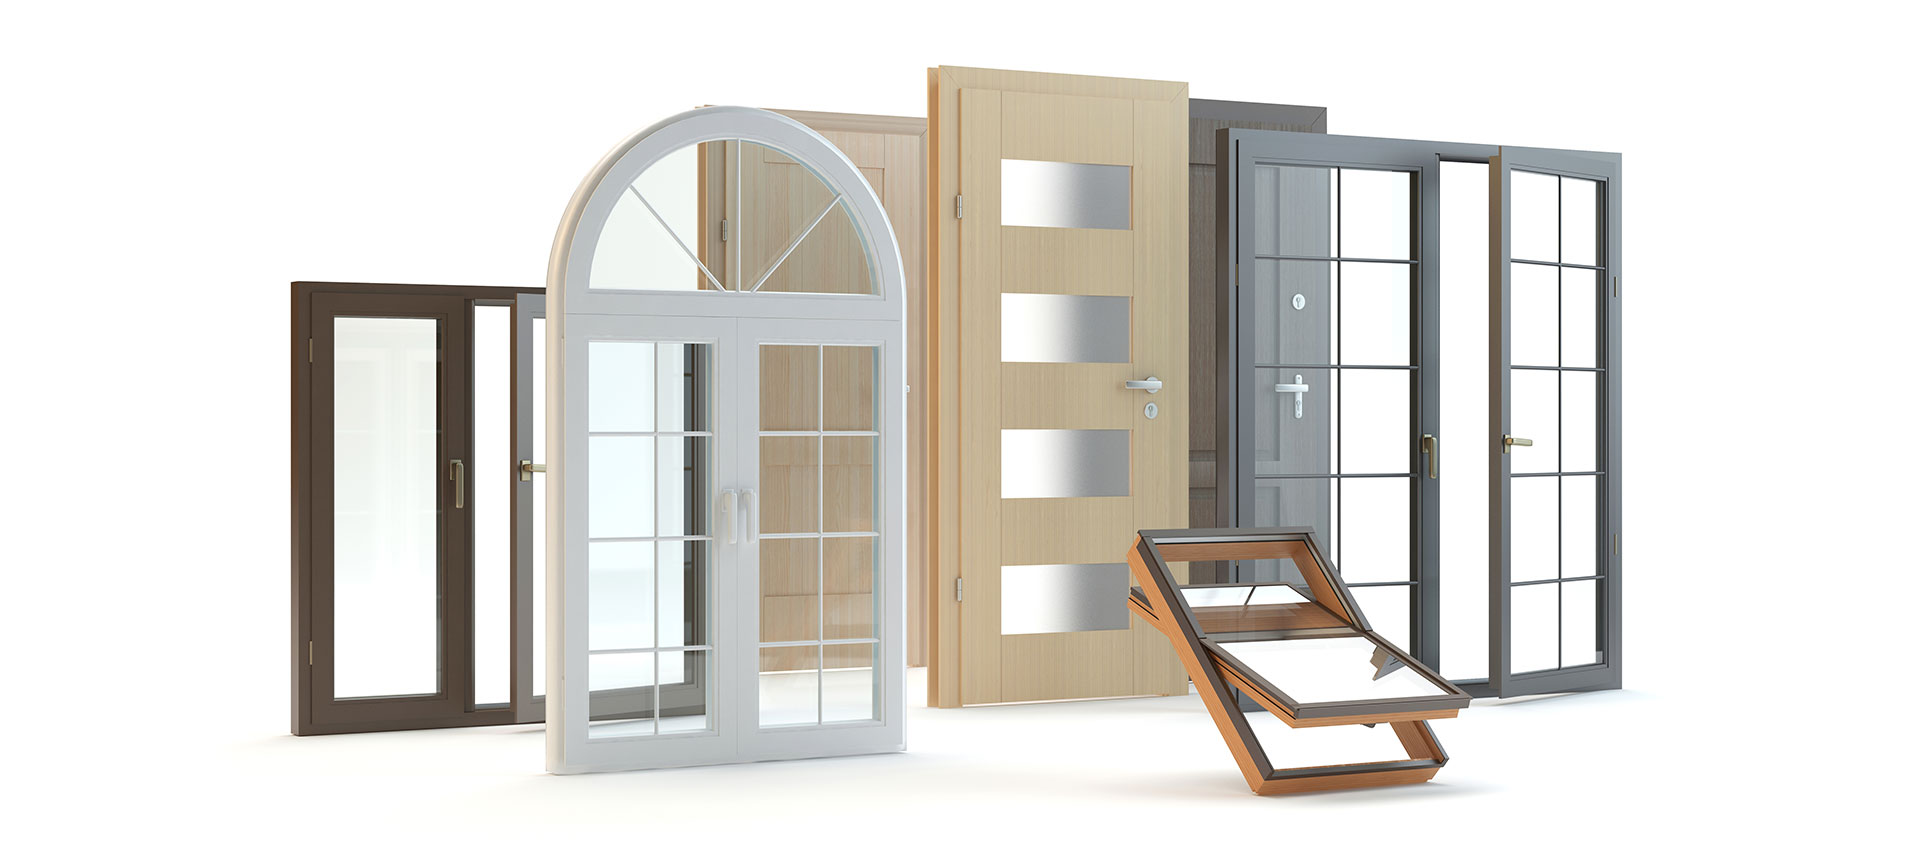 High Quality <br> windows & doors